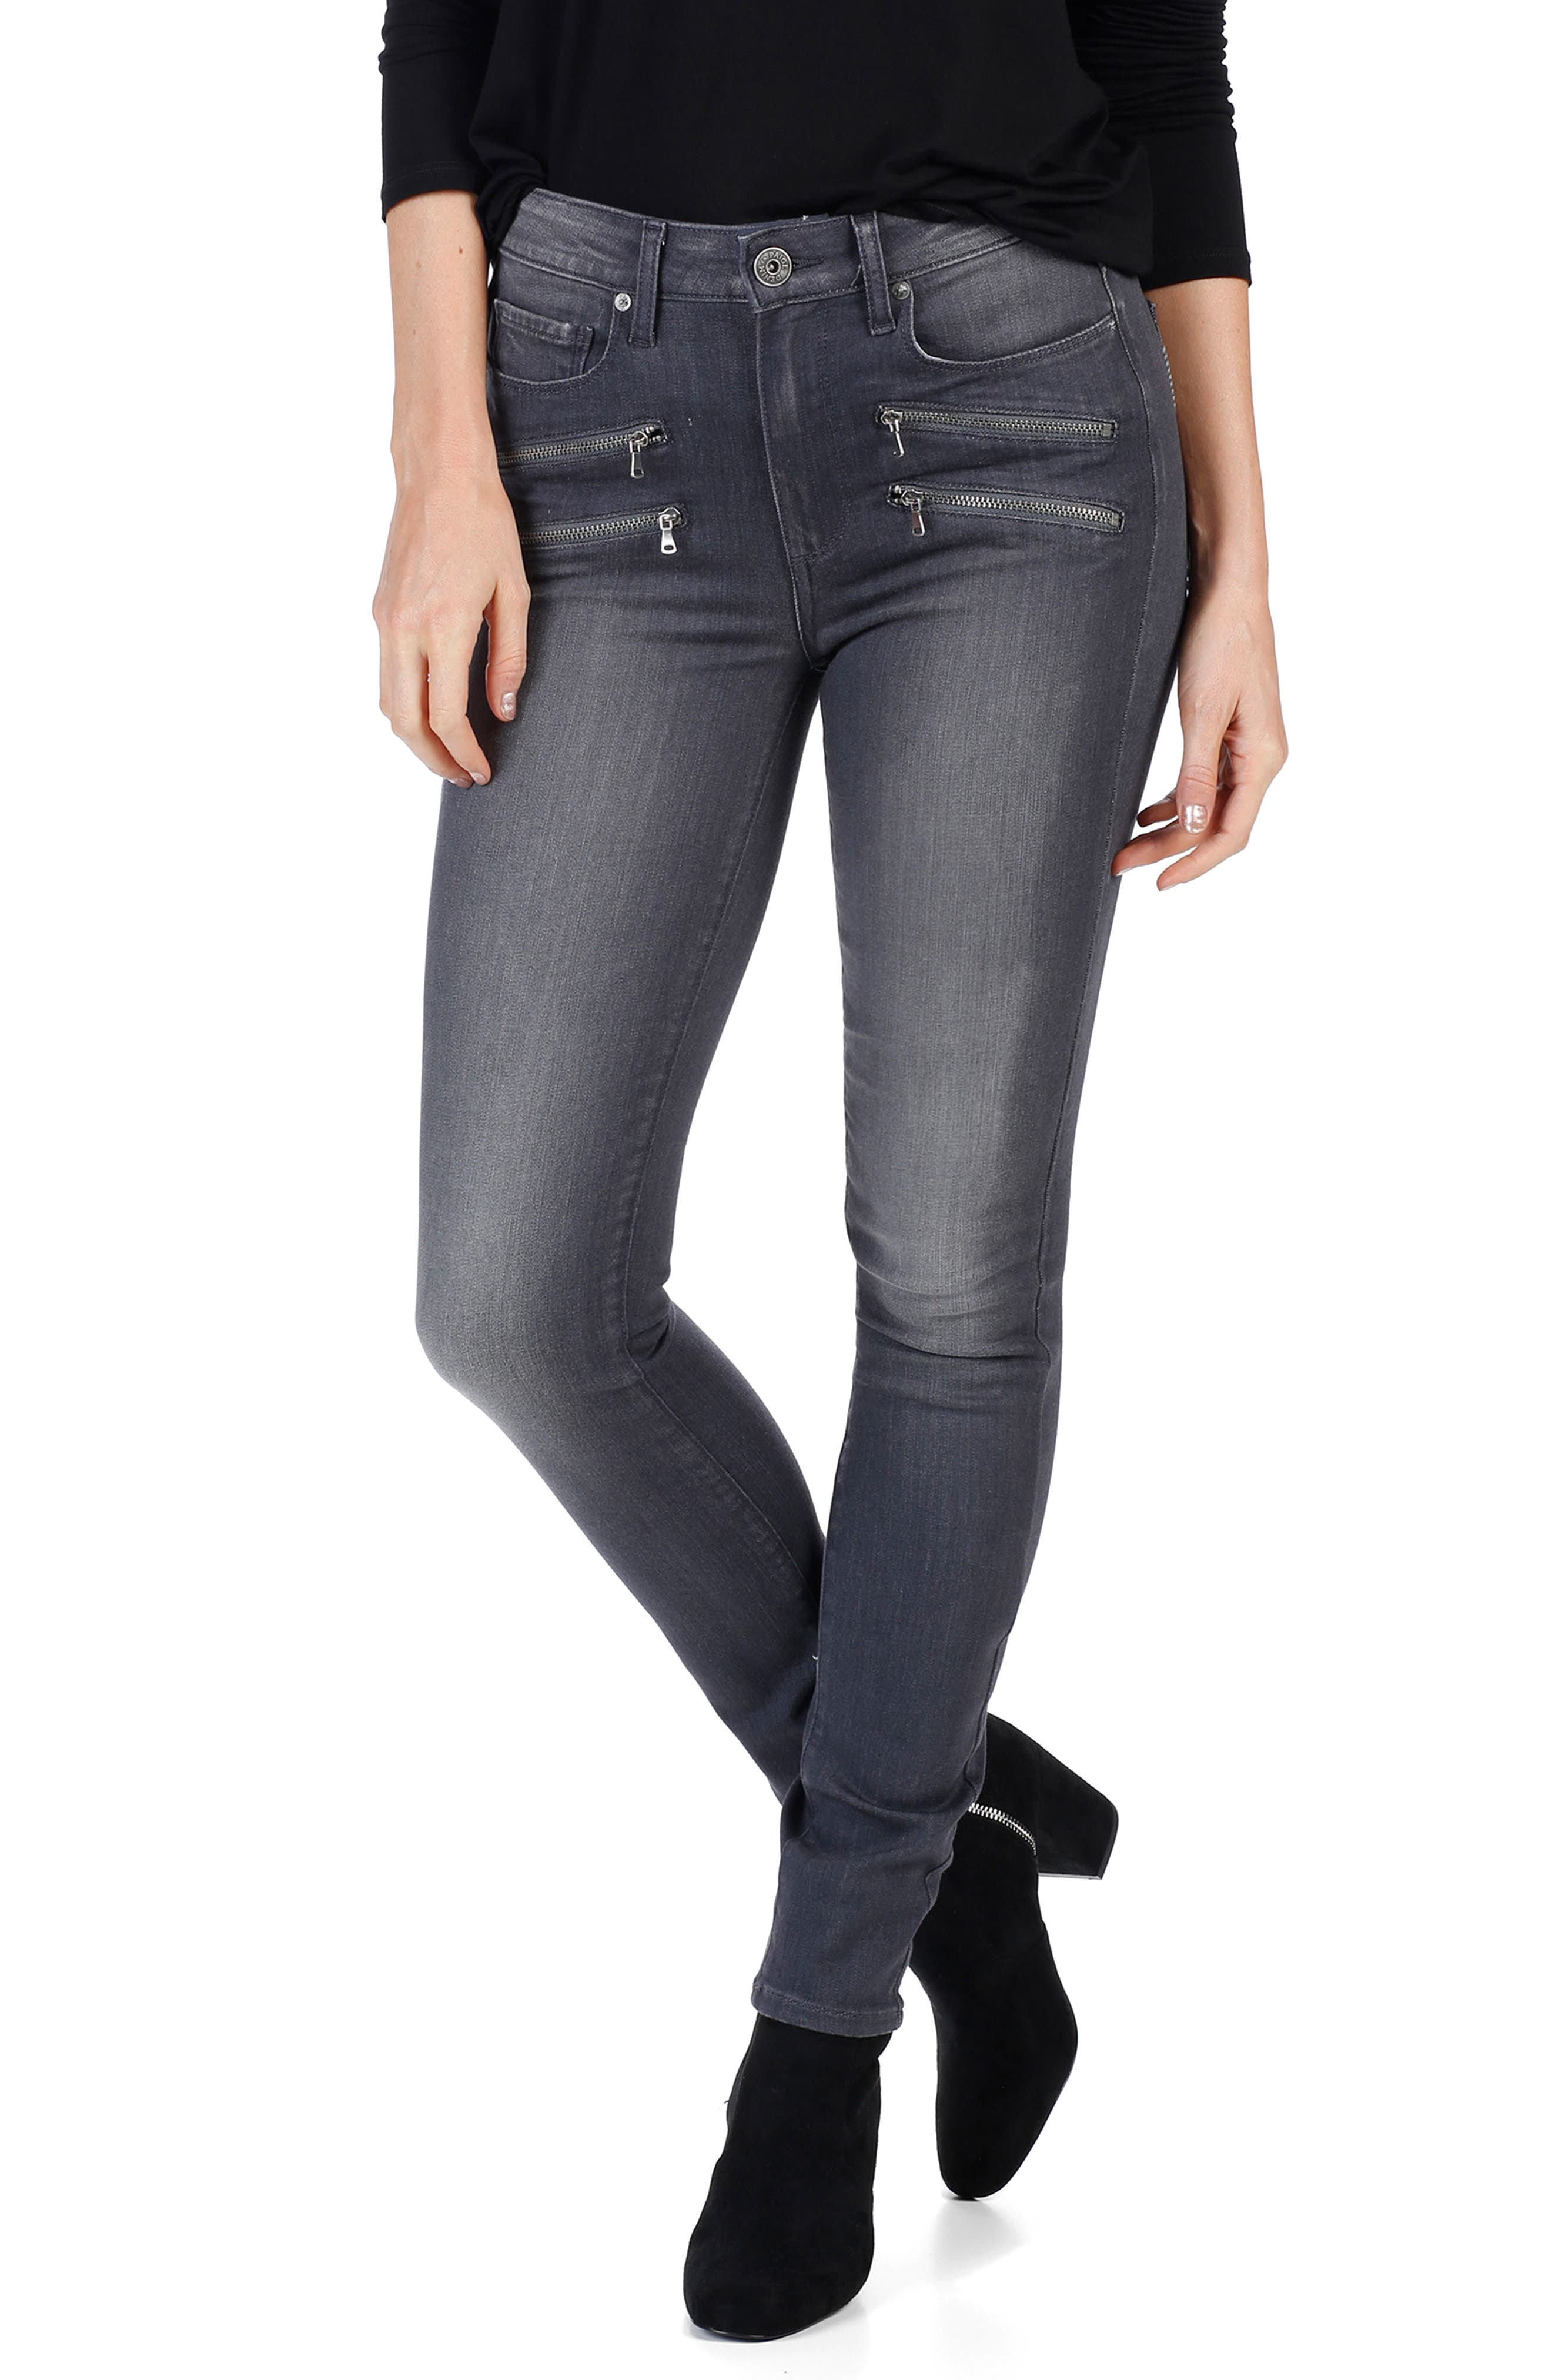 Main Image - PAIGE Transcend - Edgemont High Waist Skinny Jeans (Summit Grey)